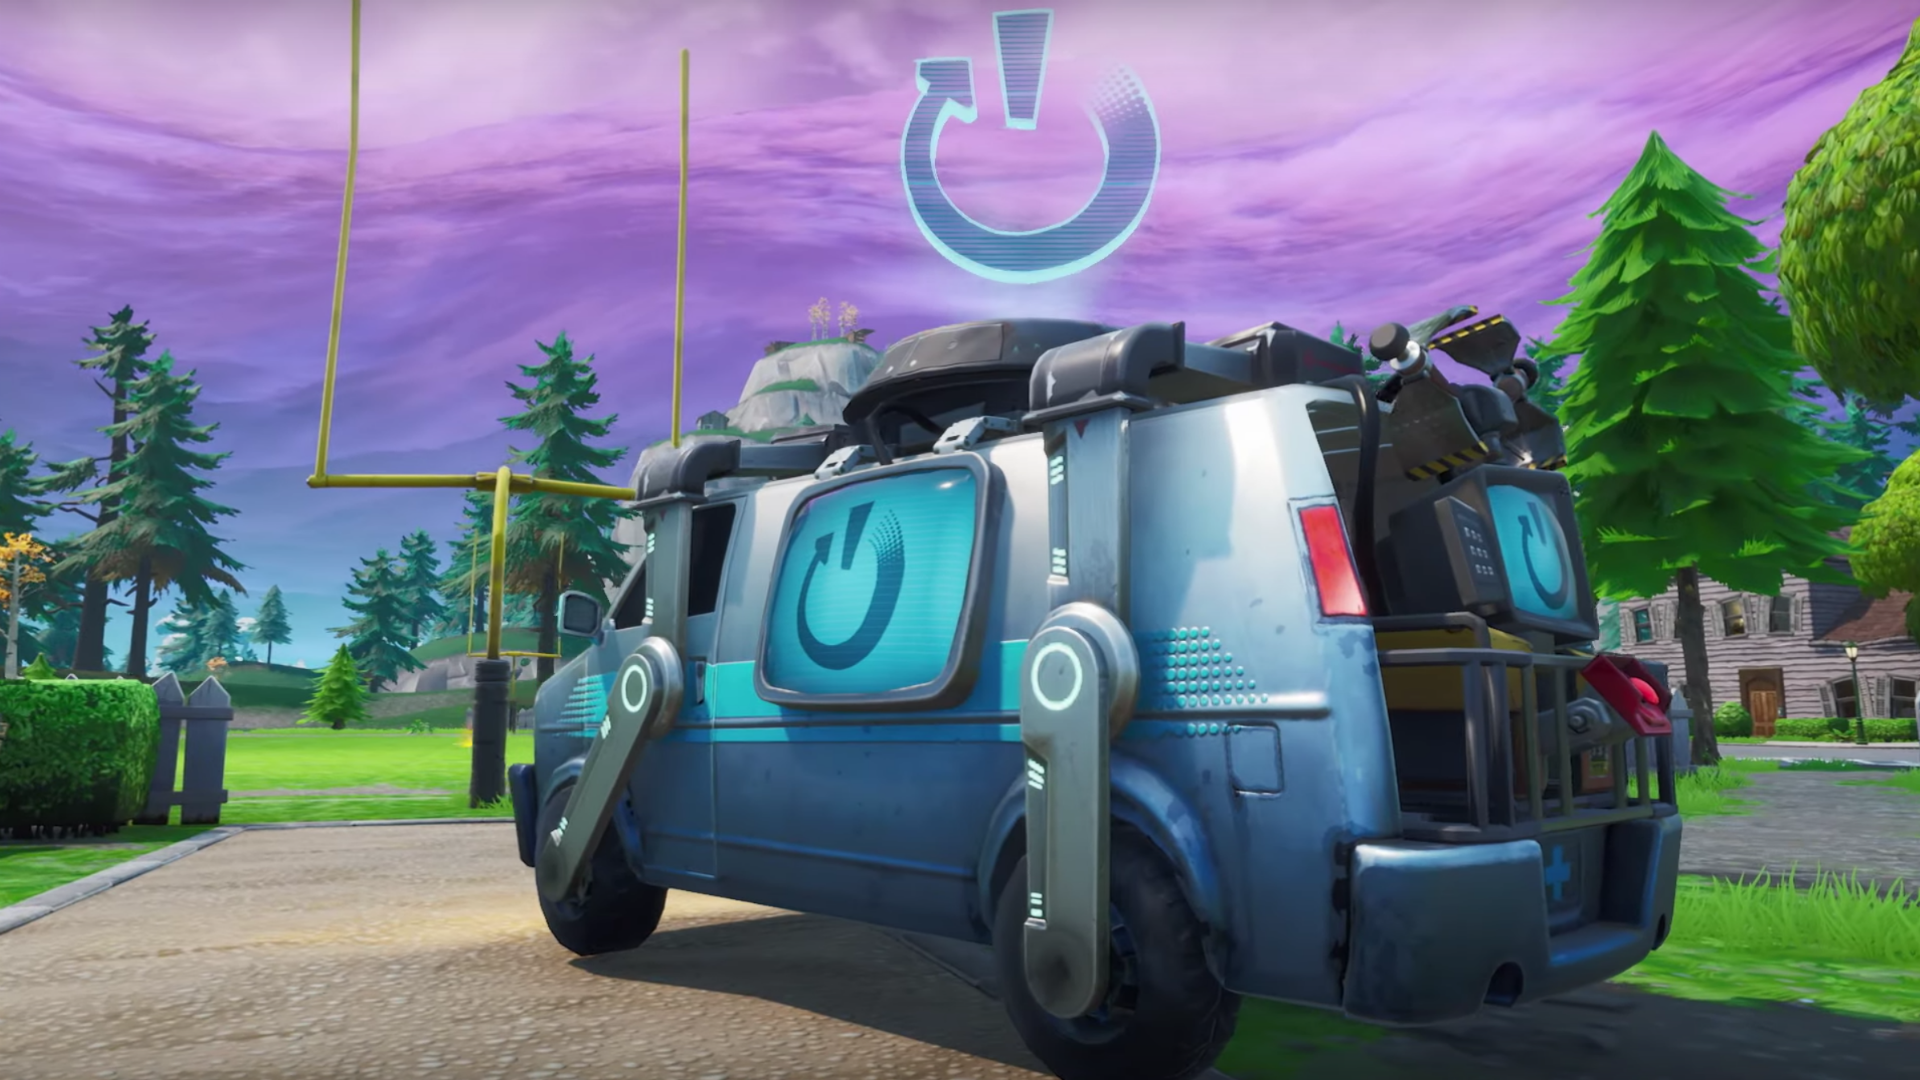 Fortnite is getting Reboot Vans which work exactly like Apex Legends' respawns